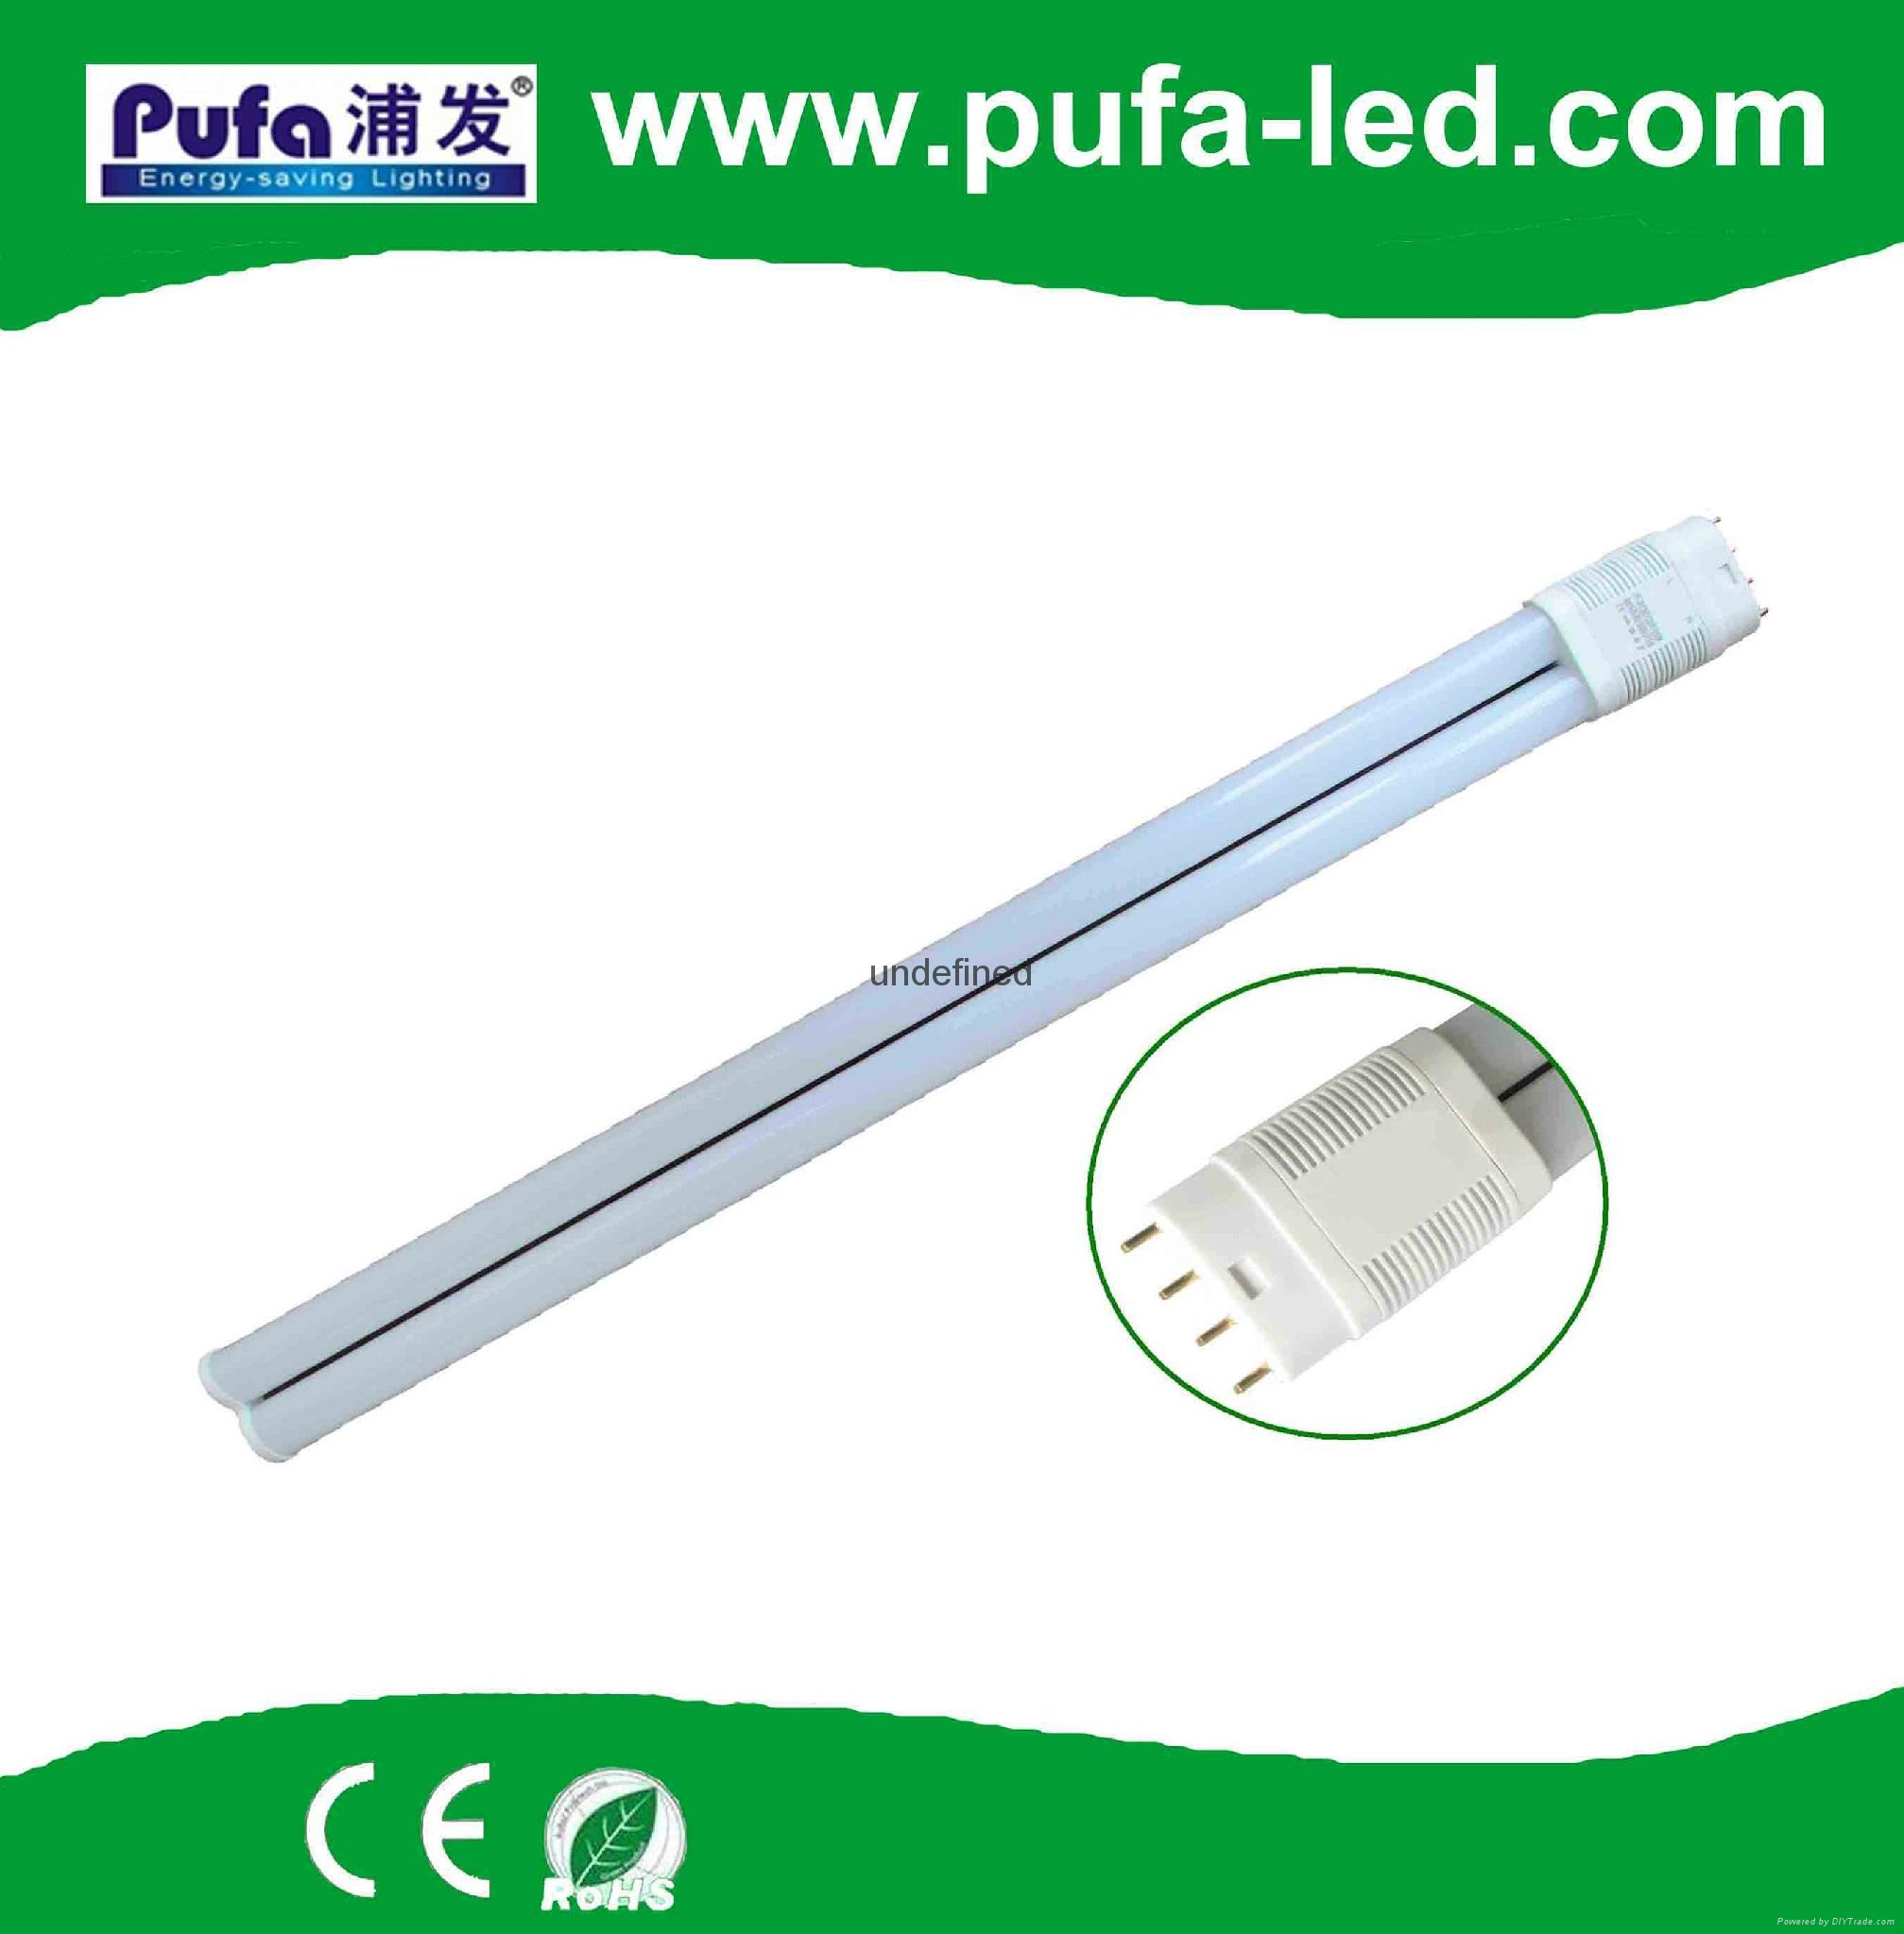 Led Pll Lamp 2g11 20w Pf 2hcbd20w Pufa China